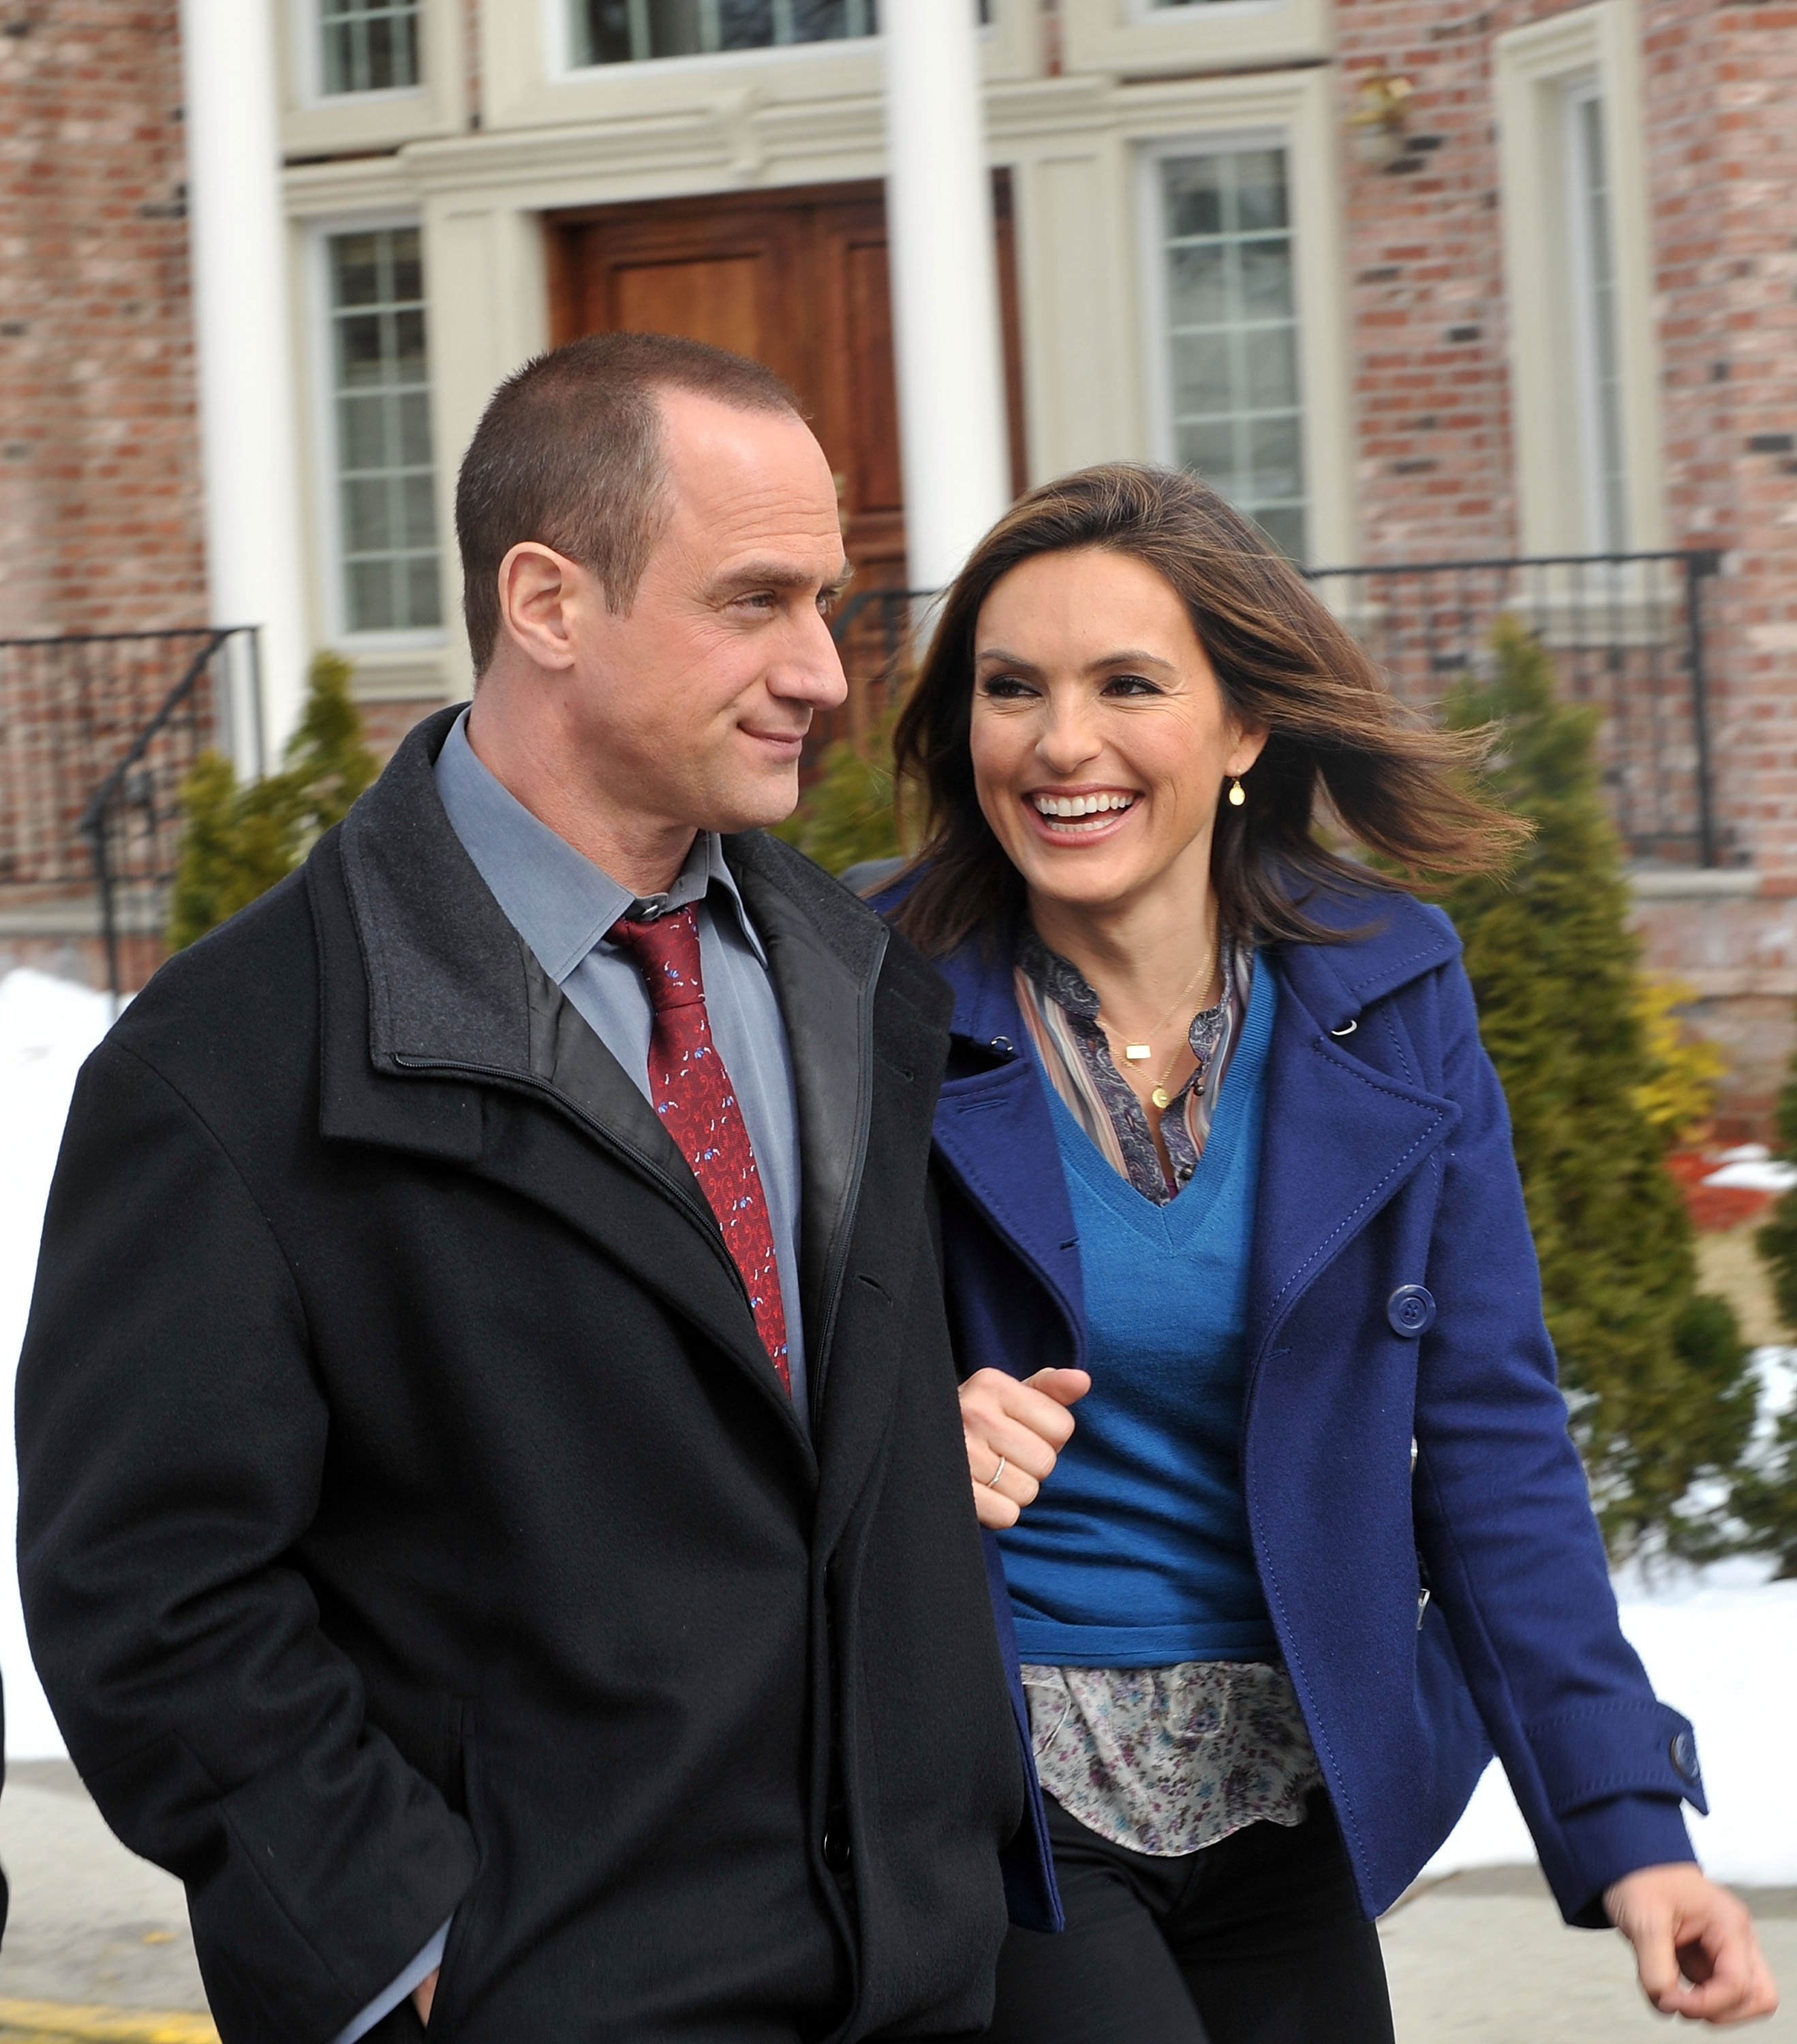 """Christopher Meloni and Mariska Hargitay on location for """"Law & Order: SVU"""" on March 4, 2010 in Fort Lee City 